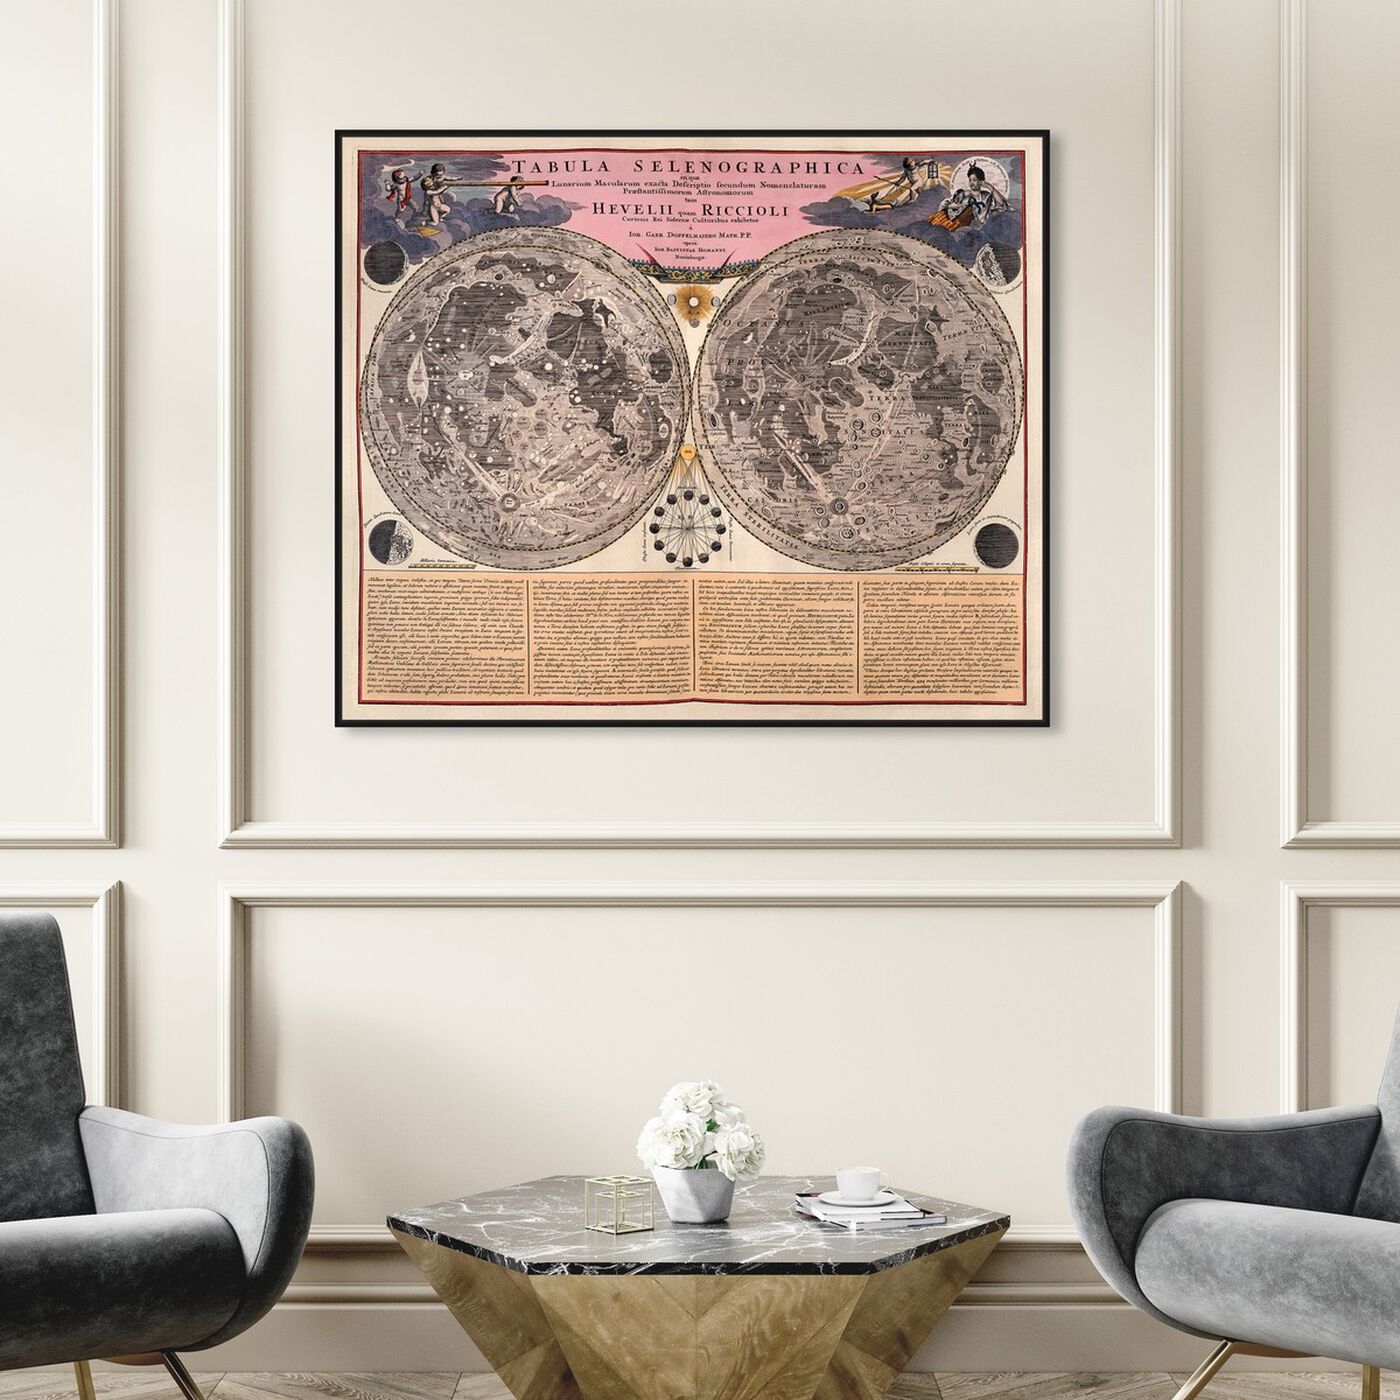 Hanging view of Tabula Selenographica featuring maps and flags and world maps art.